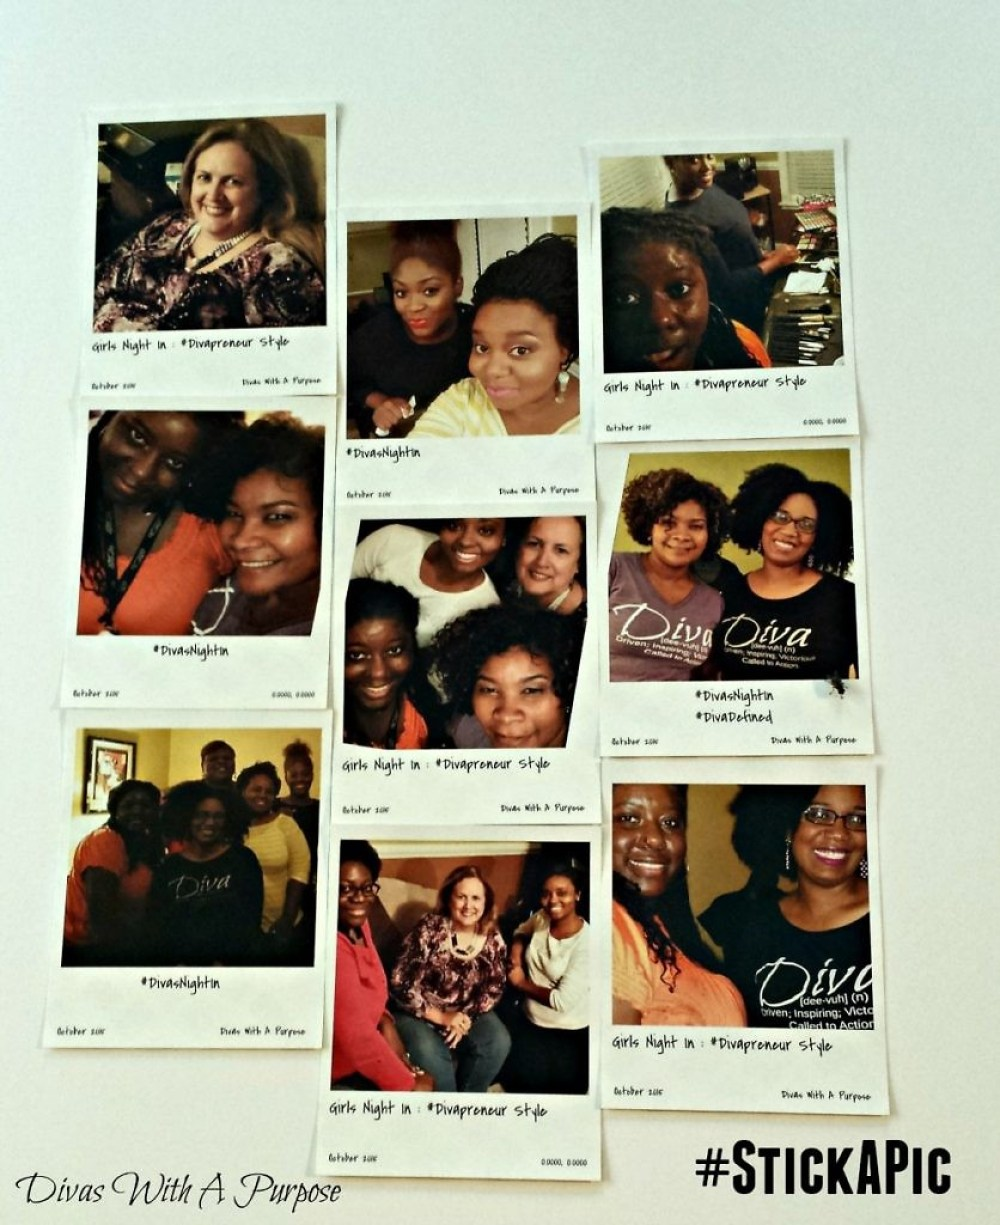 Snapshots Collage from Girls Night In: Divapreneur Style